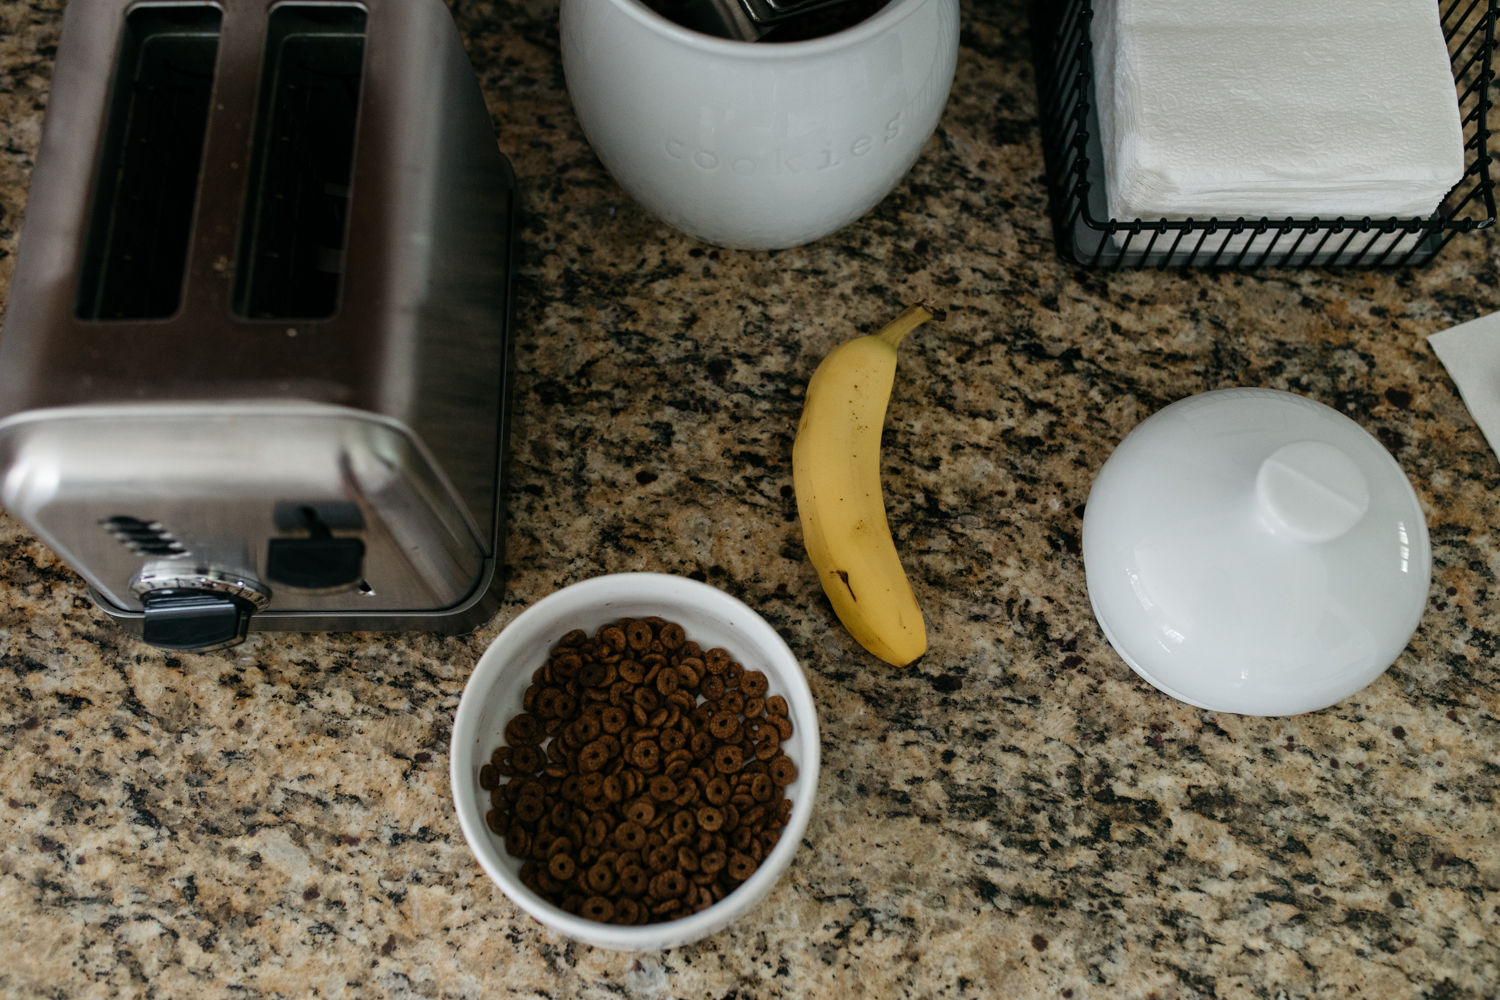 Dog Food and Banana on Kitchen Counter Orlando Documentary Photographer.jpg